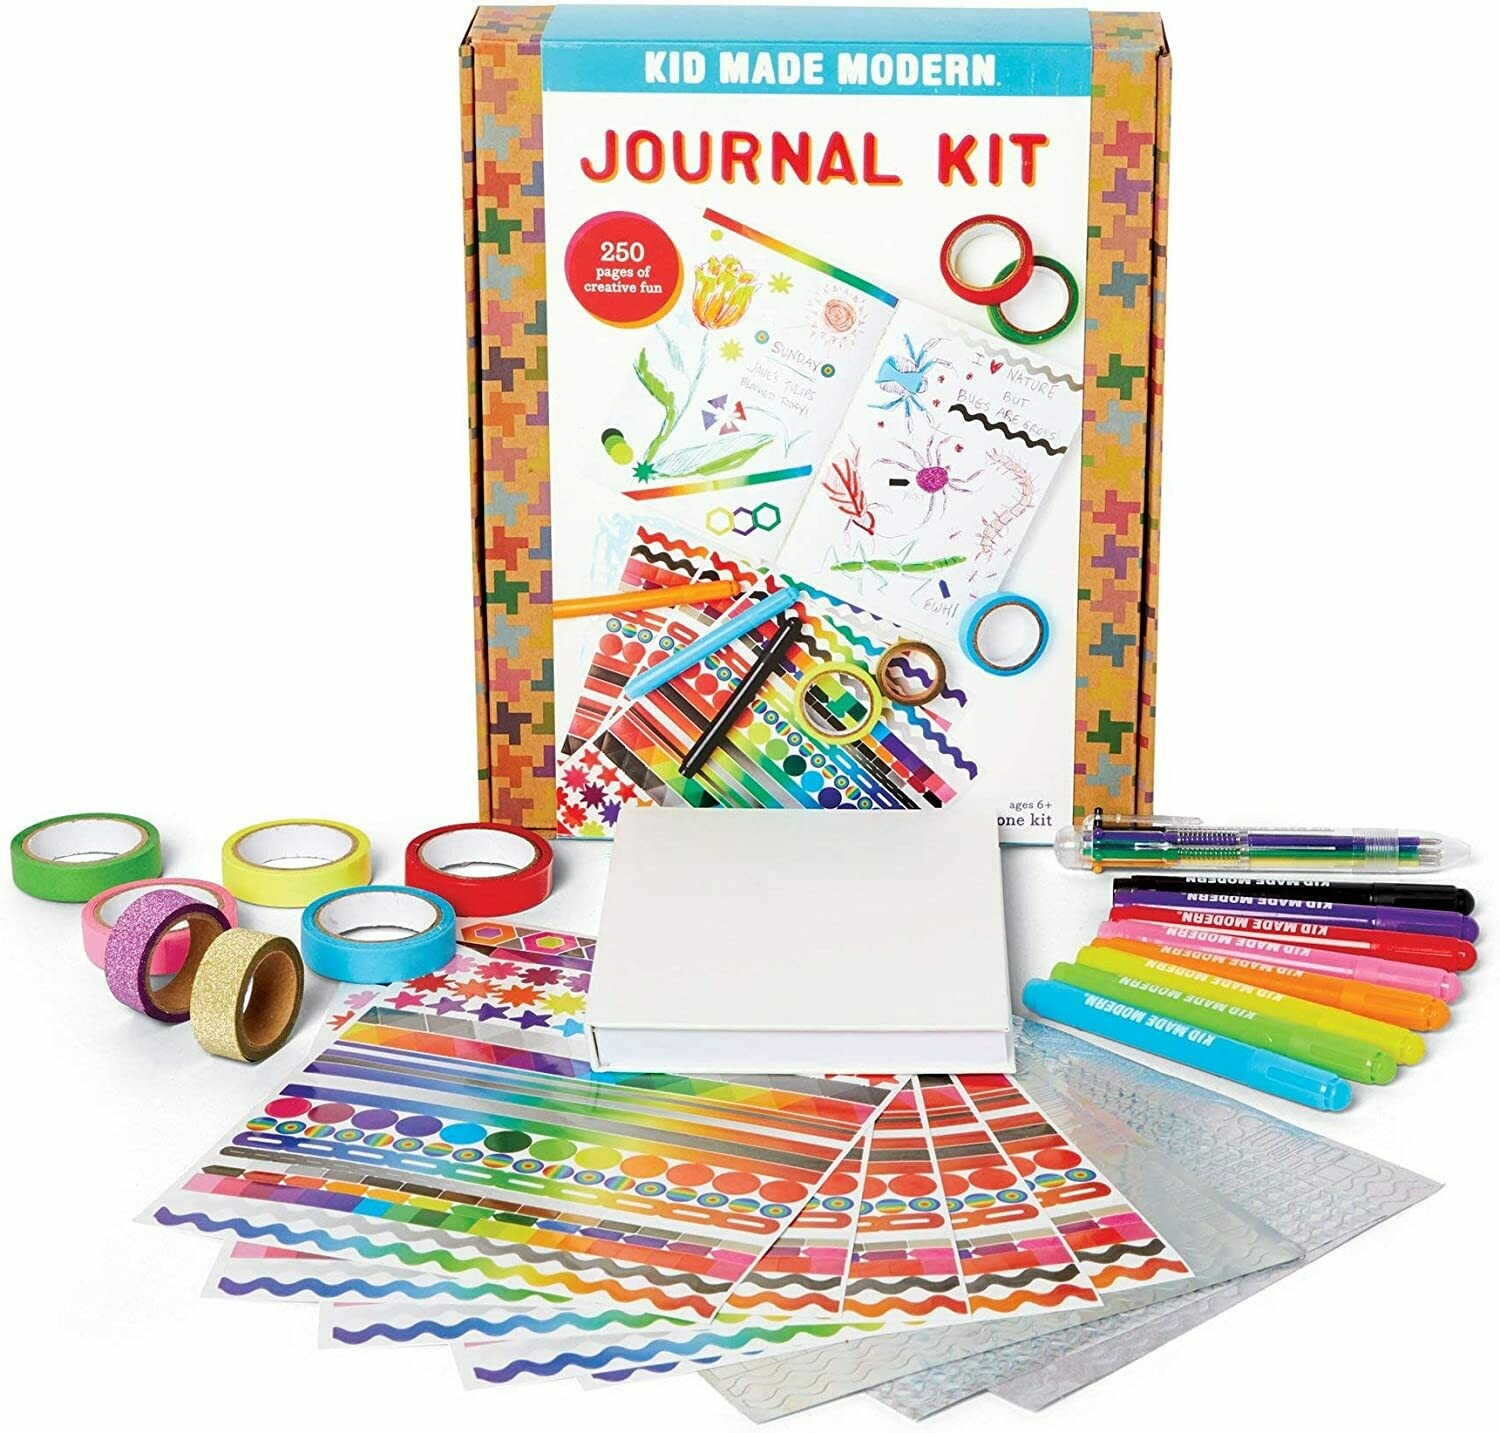 KID MADE MODERN: JOURNAL KIT